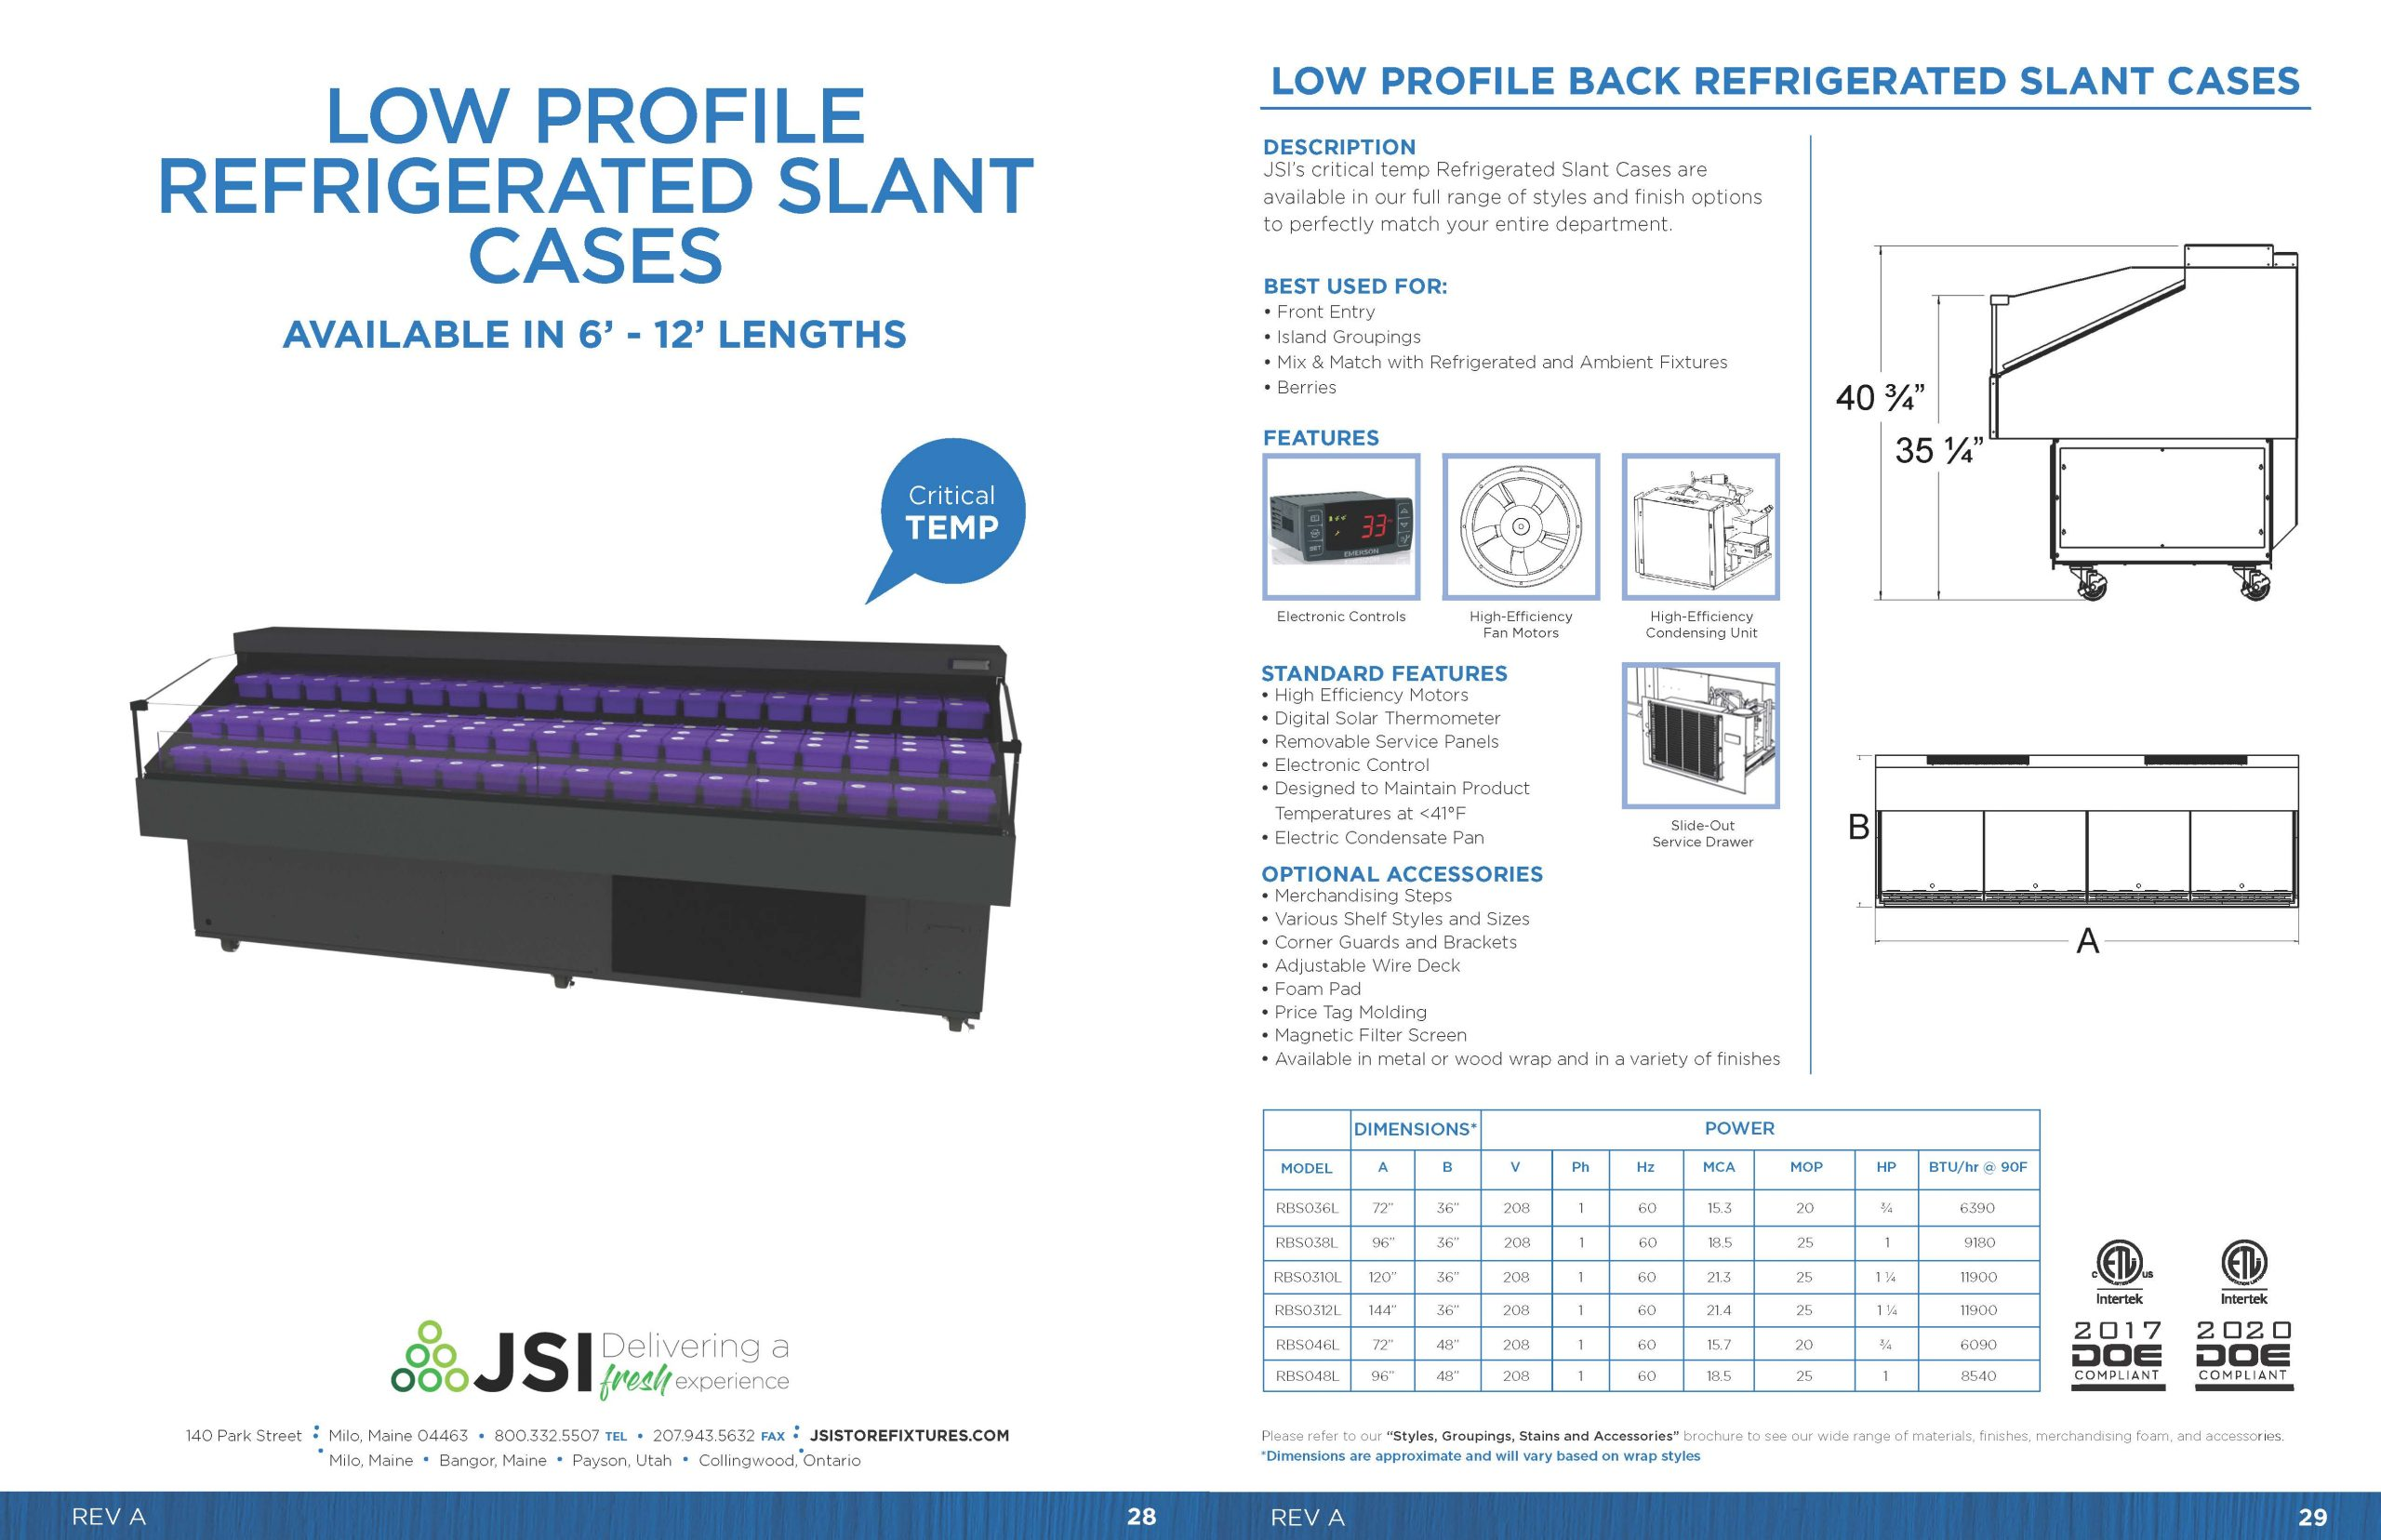 Low Profile Refrigerated Slant Cases_6ft-12ft